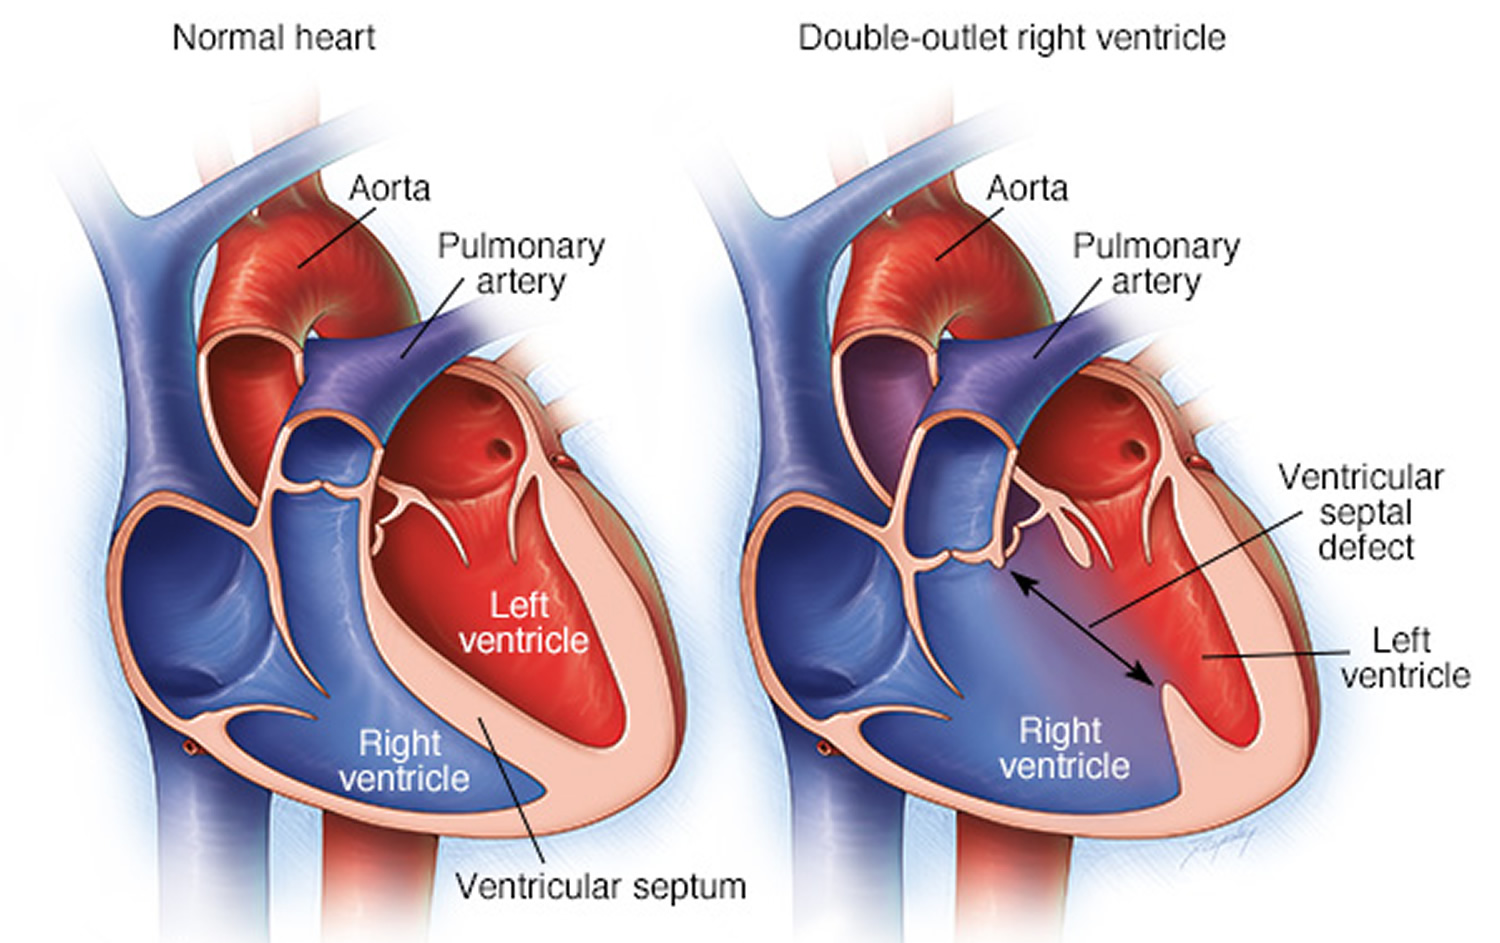 Double Outlet Right Ventricle - Repair, Surgery & Survival Rate